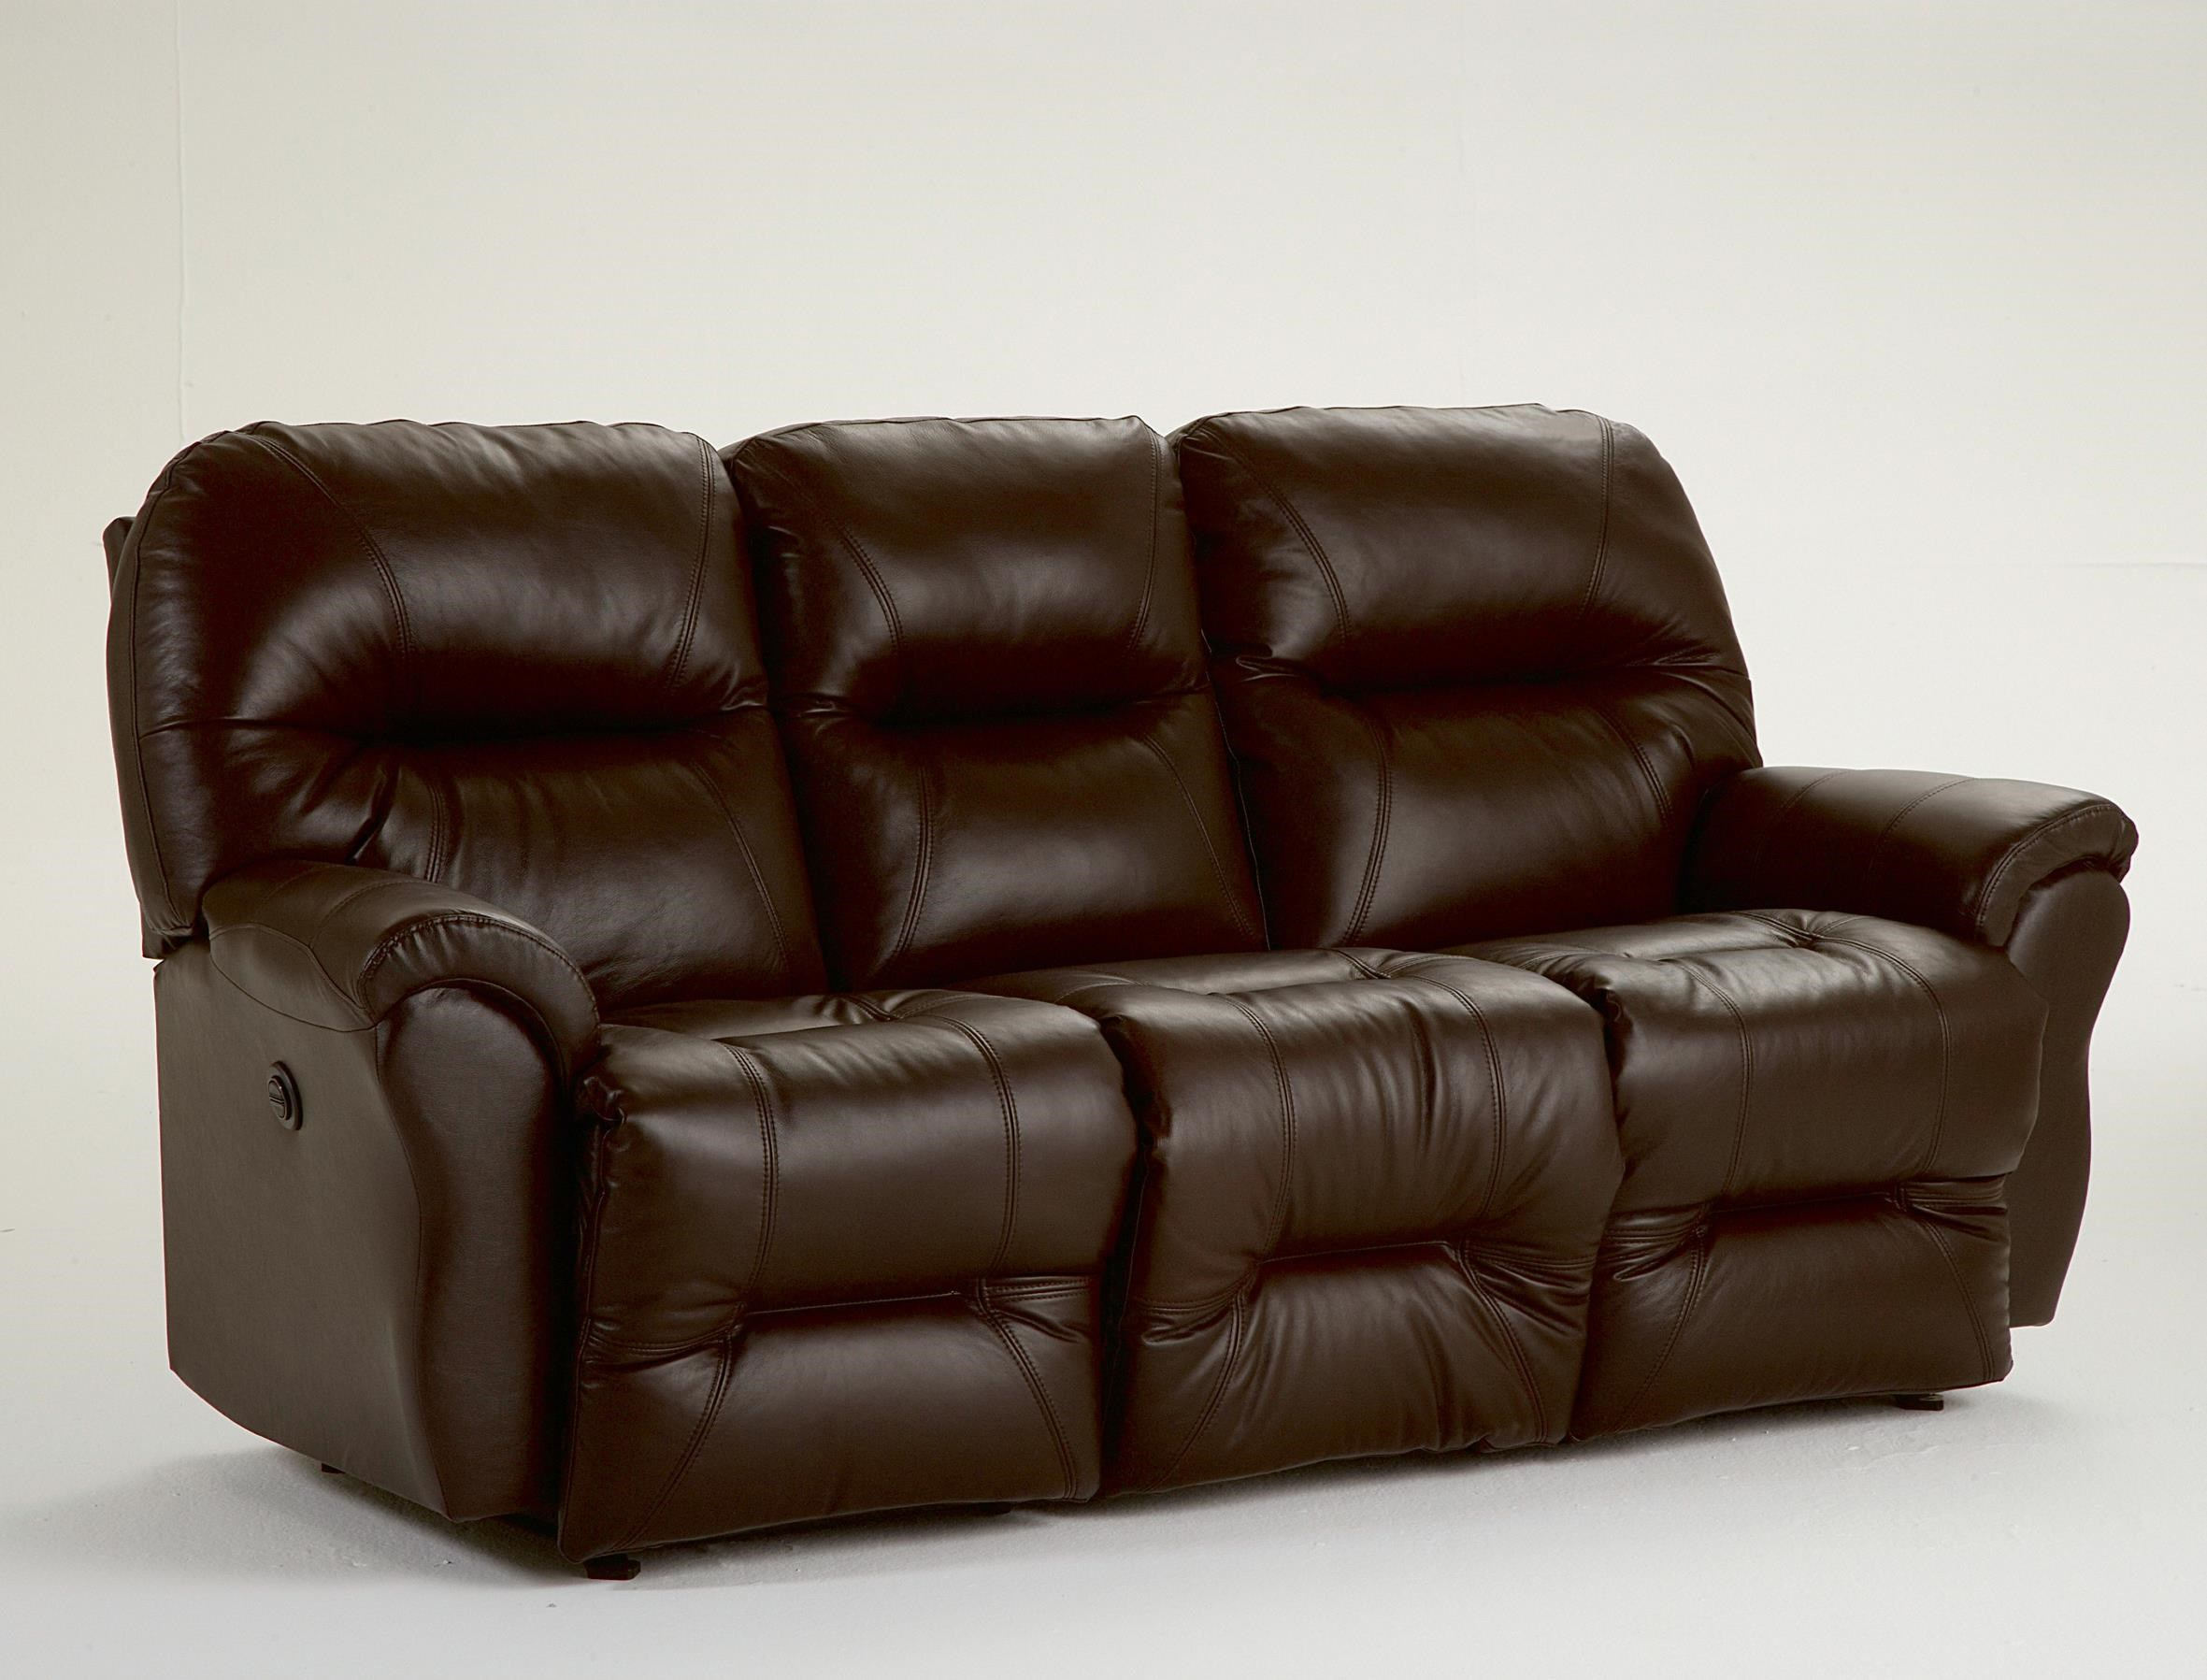 Bodie Power Motion Sofa by Best Home Furnishings at Best Home Furnishings